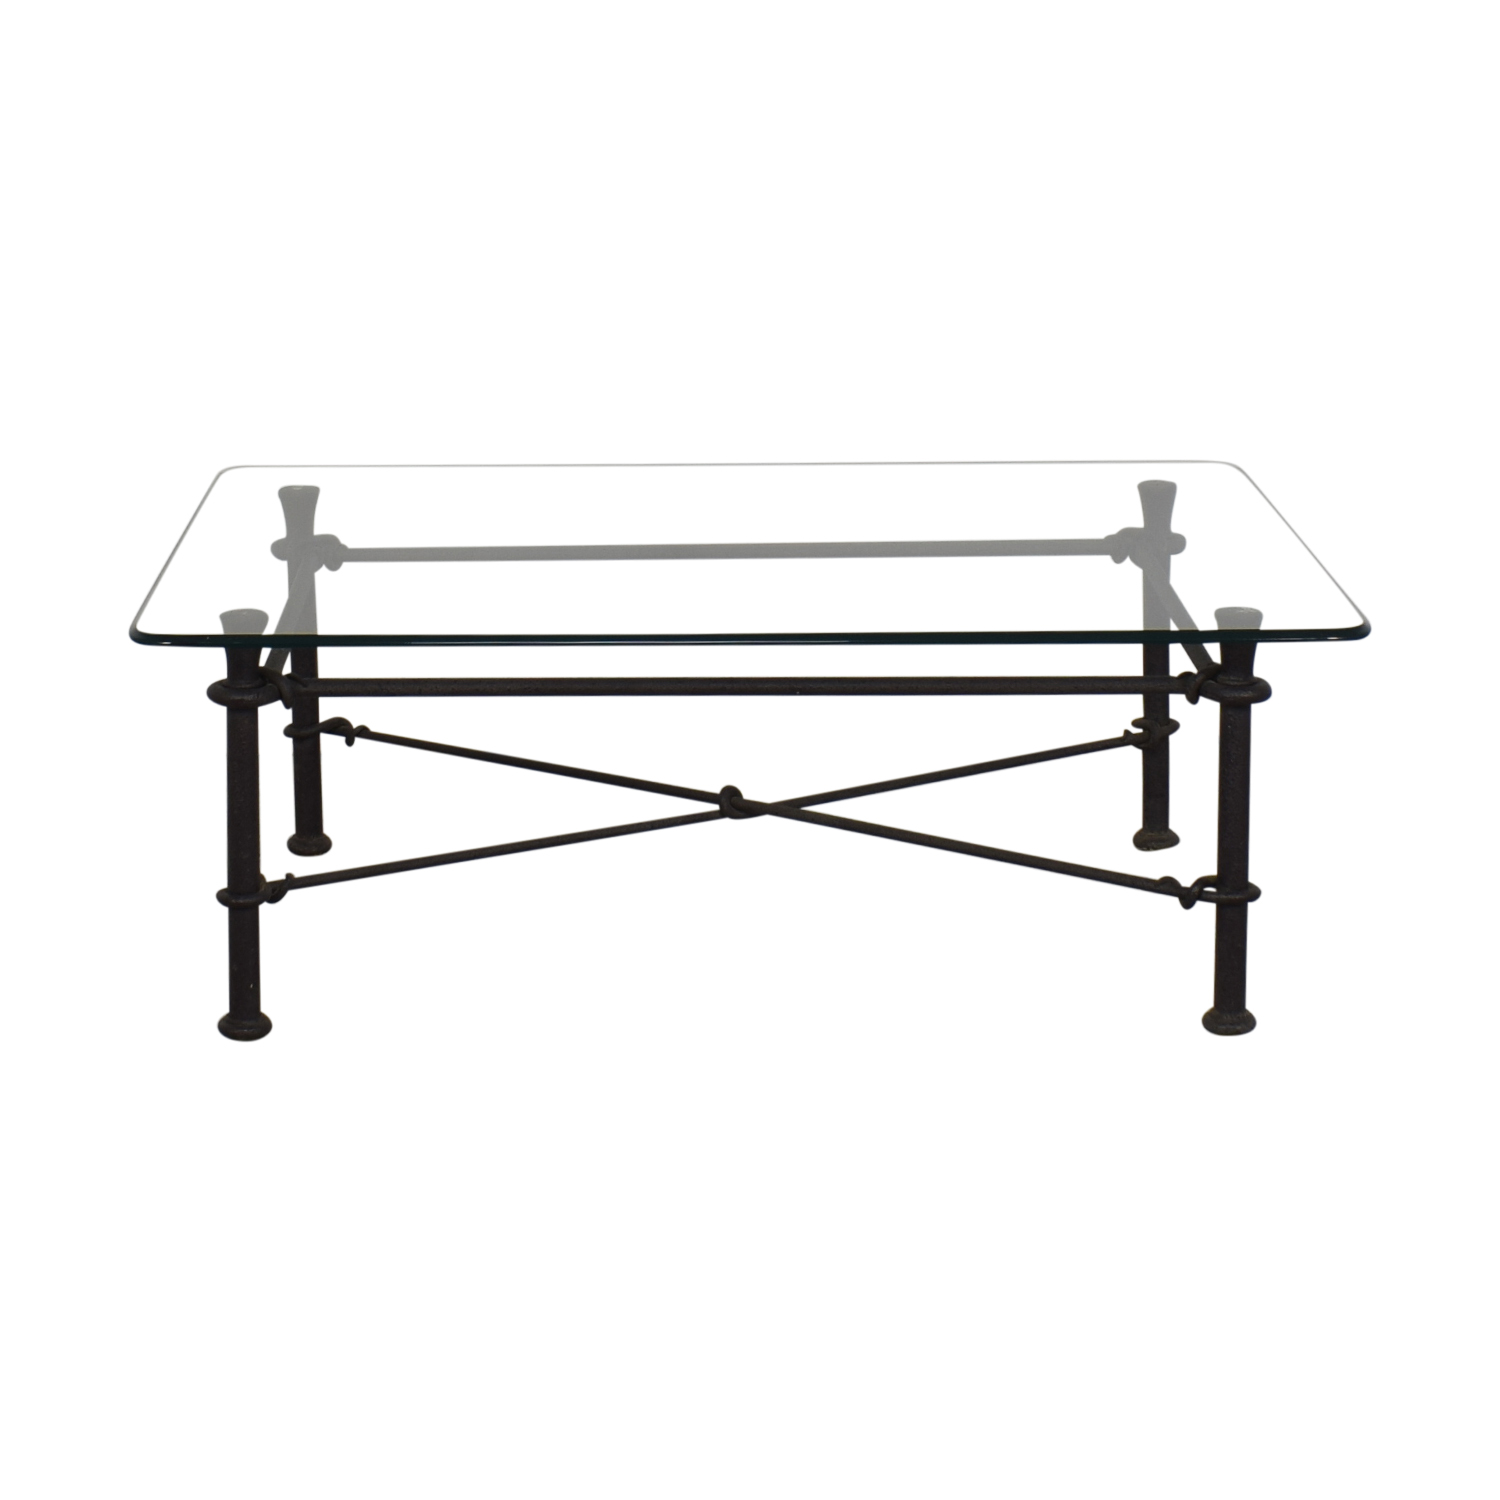 Ethan Allen Ethan Allen Glass Coffee Table with Iron Base price